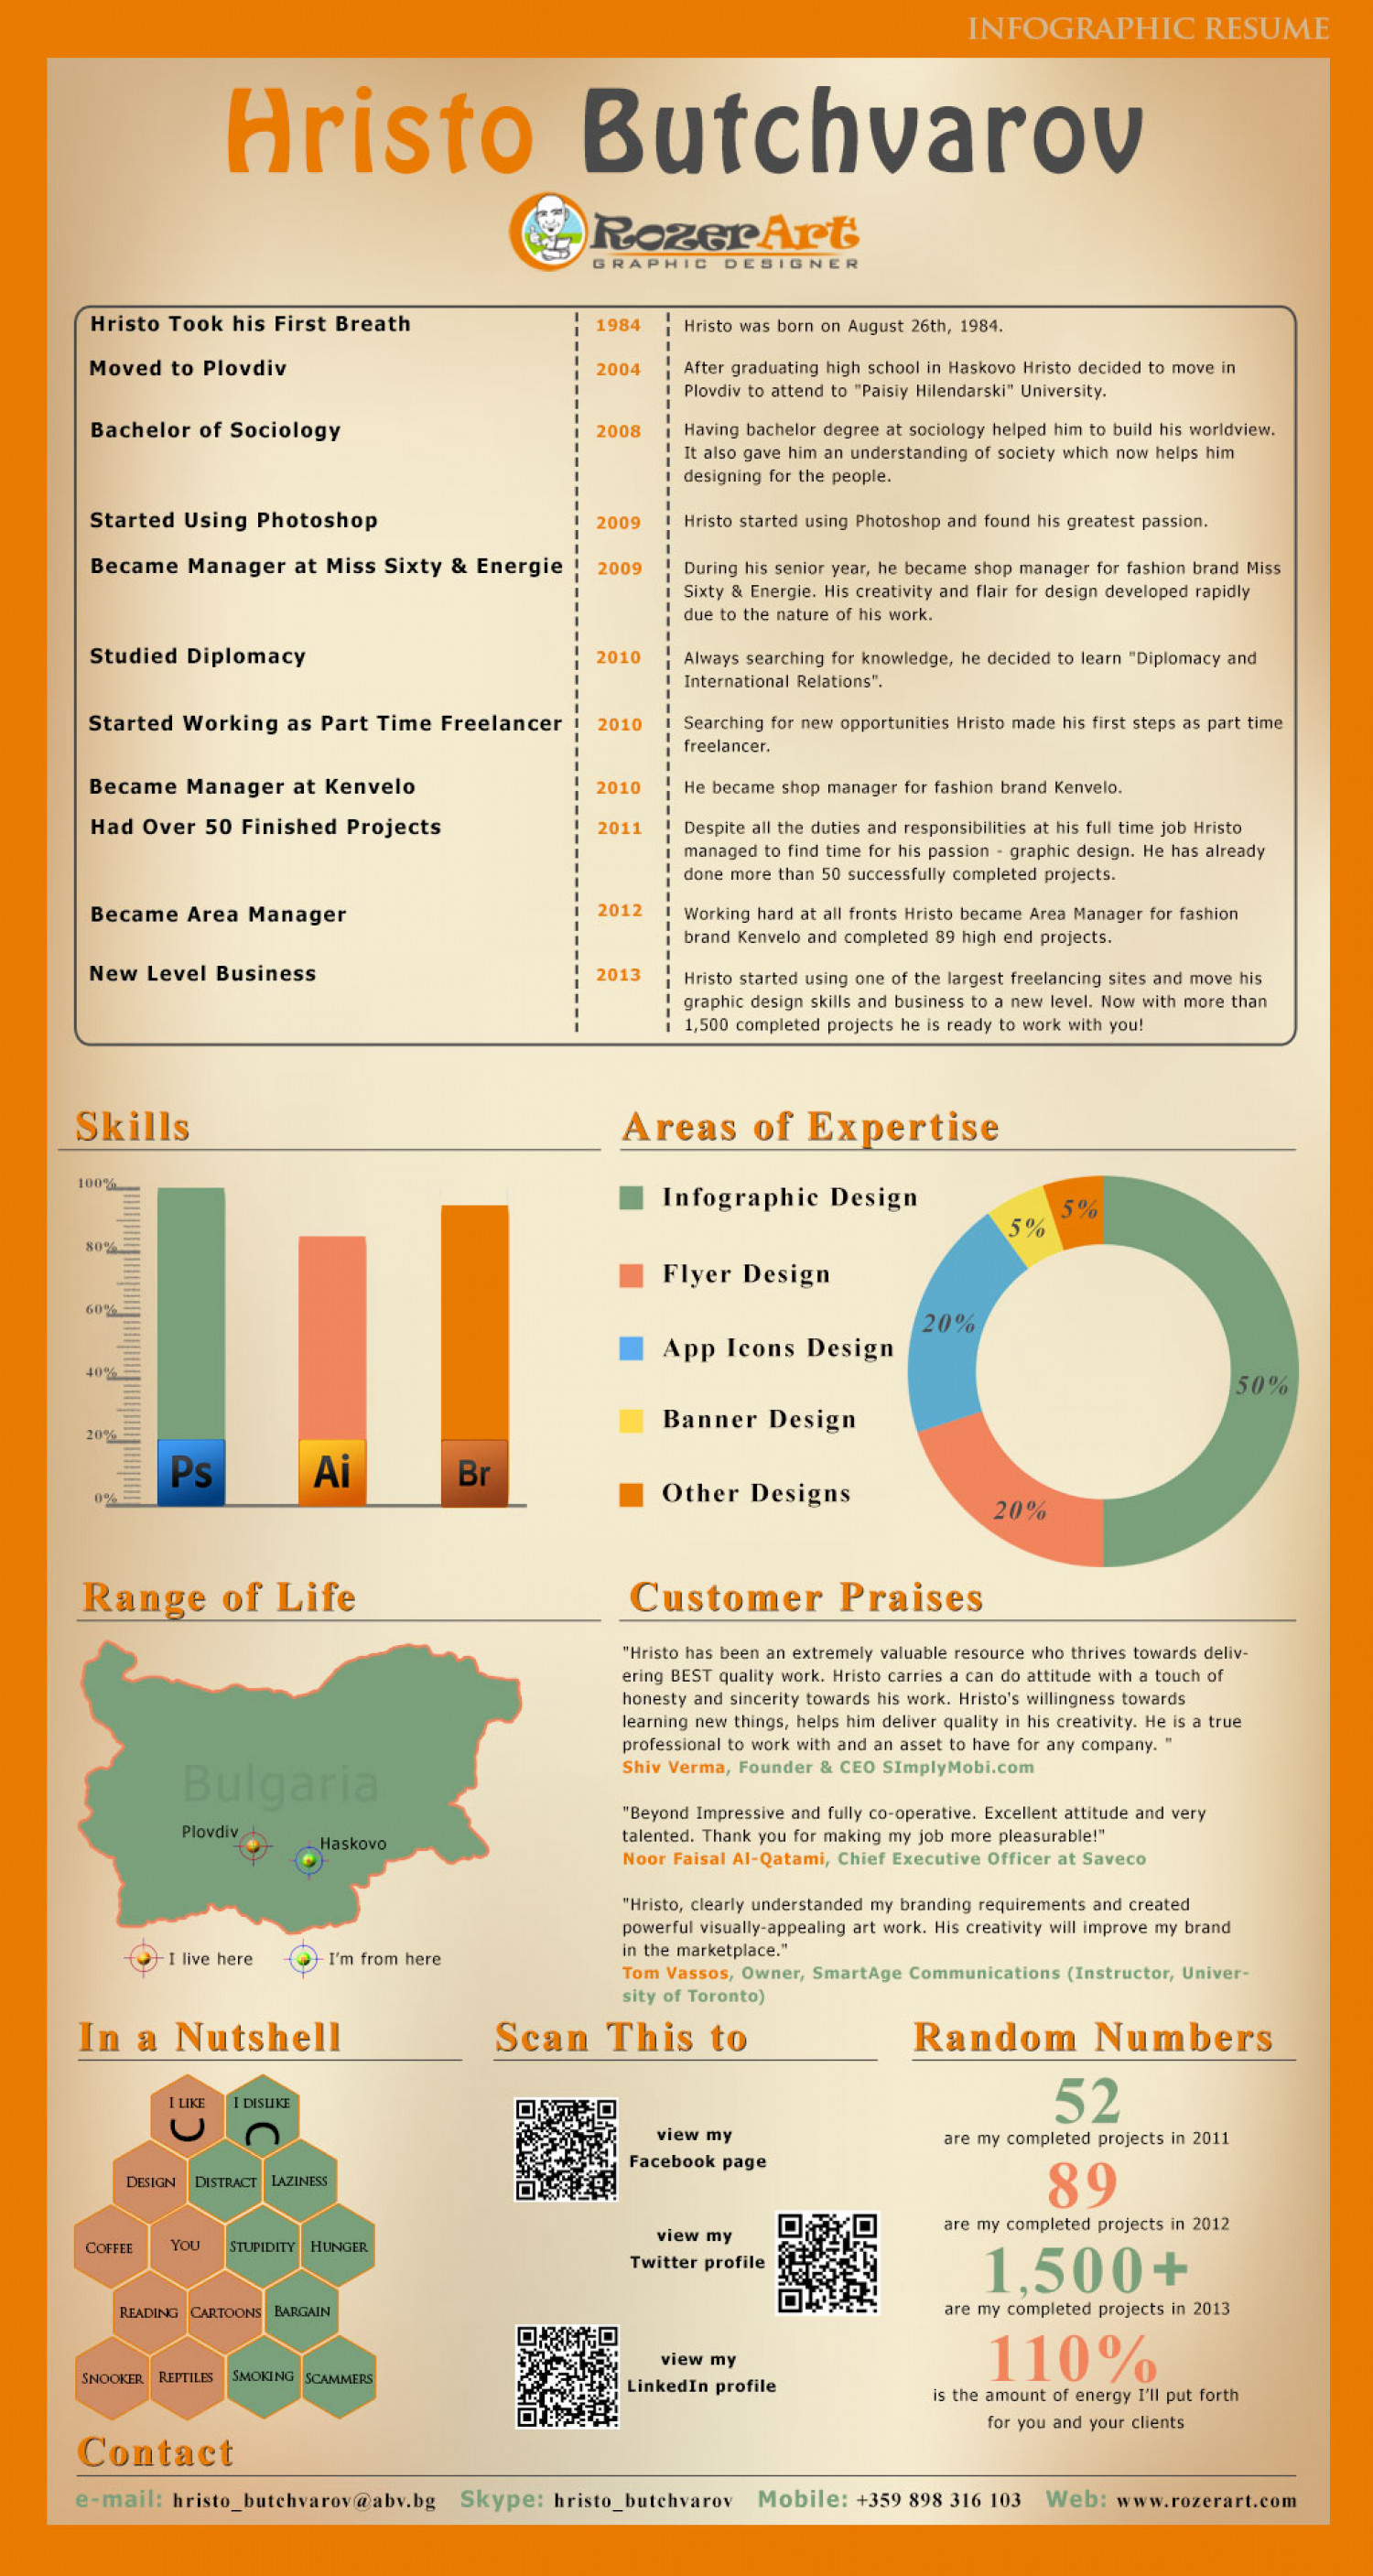 Infographic resume sites